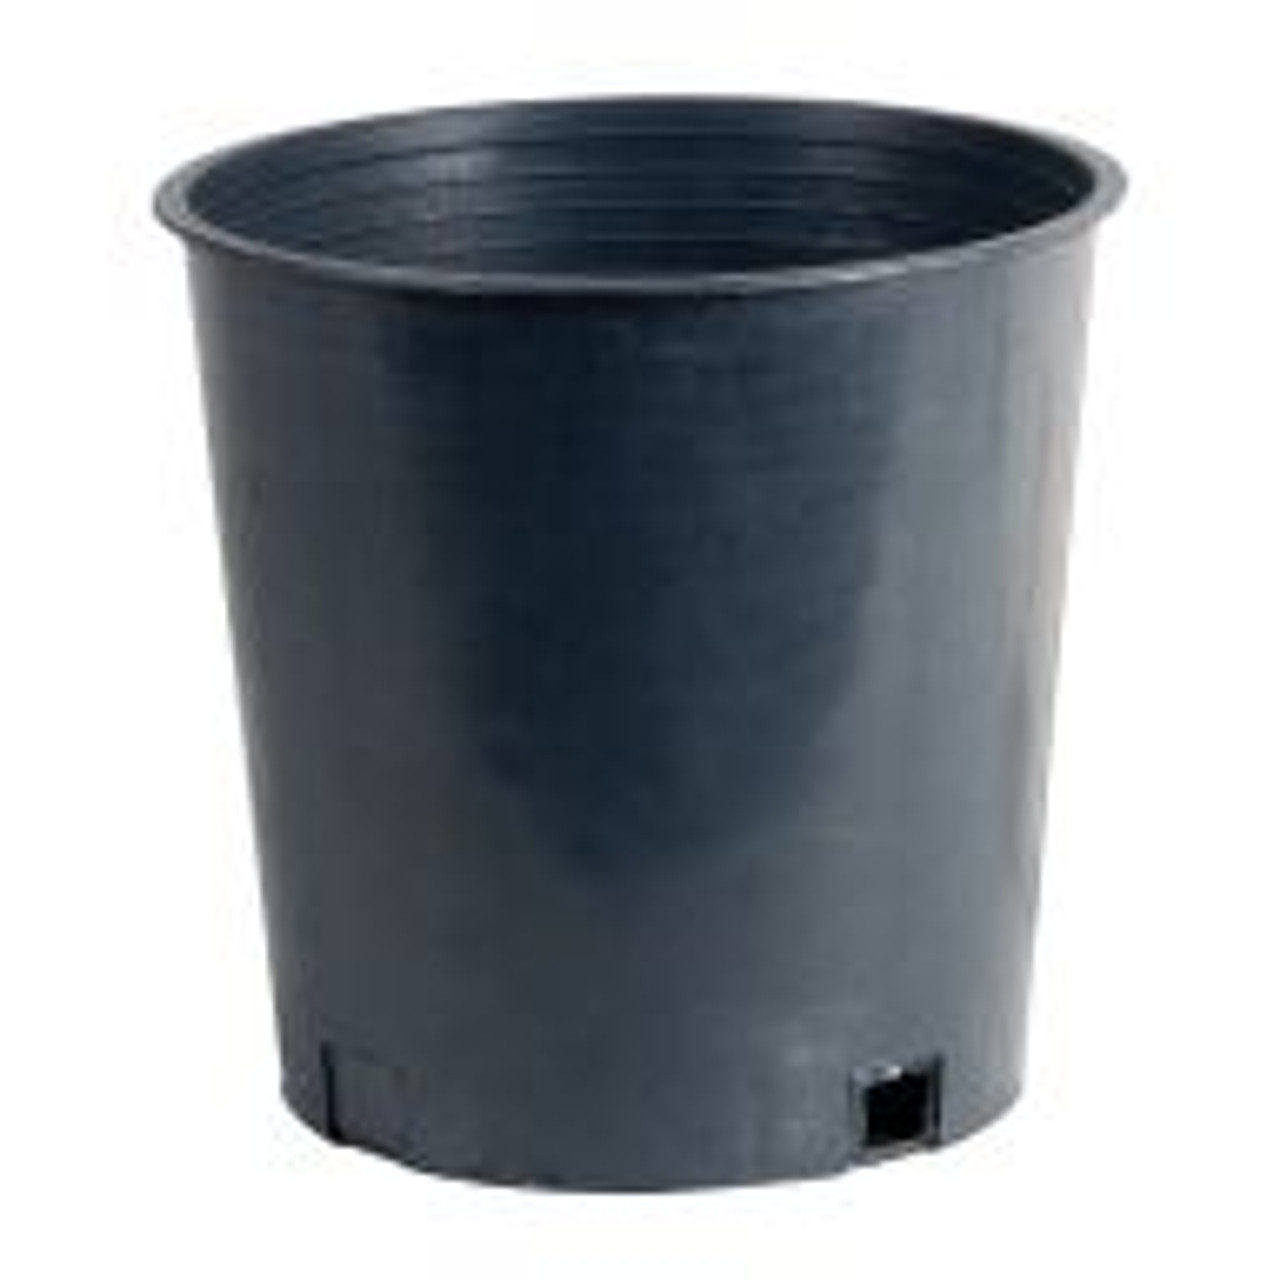 """The resilient base of each Mesh Bottom Pot supports gardeners' plant and growing media, while allowing roots to penetrate through. These versatile 6"""" pots are suitable for use indoors and out, and are particularly handy for hydroponic applications."""